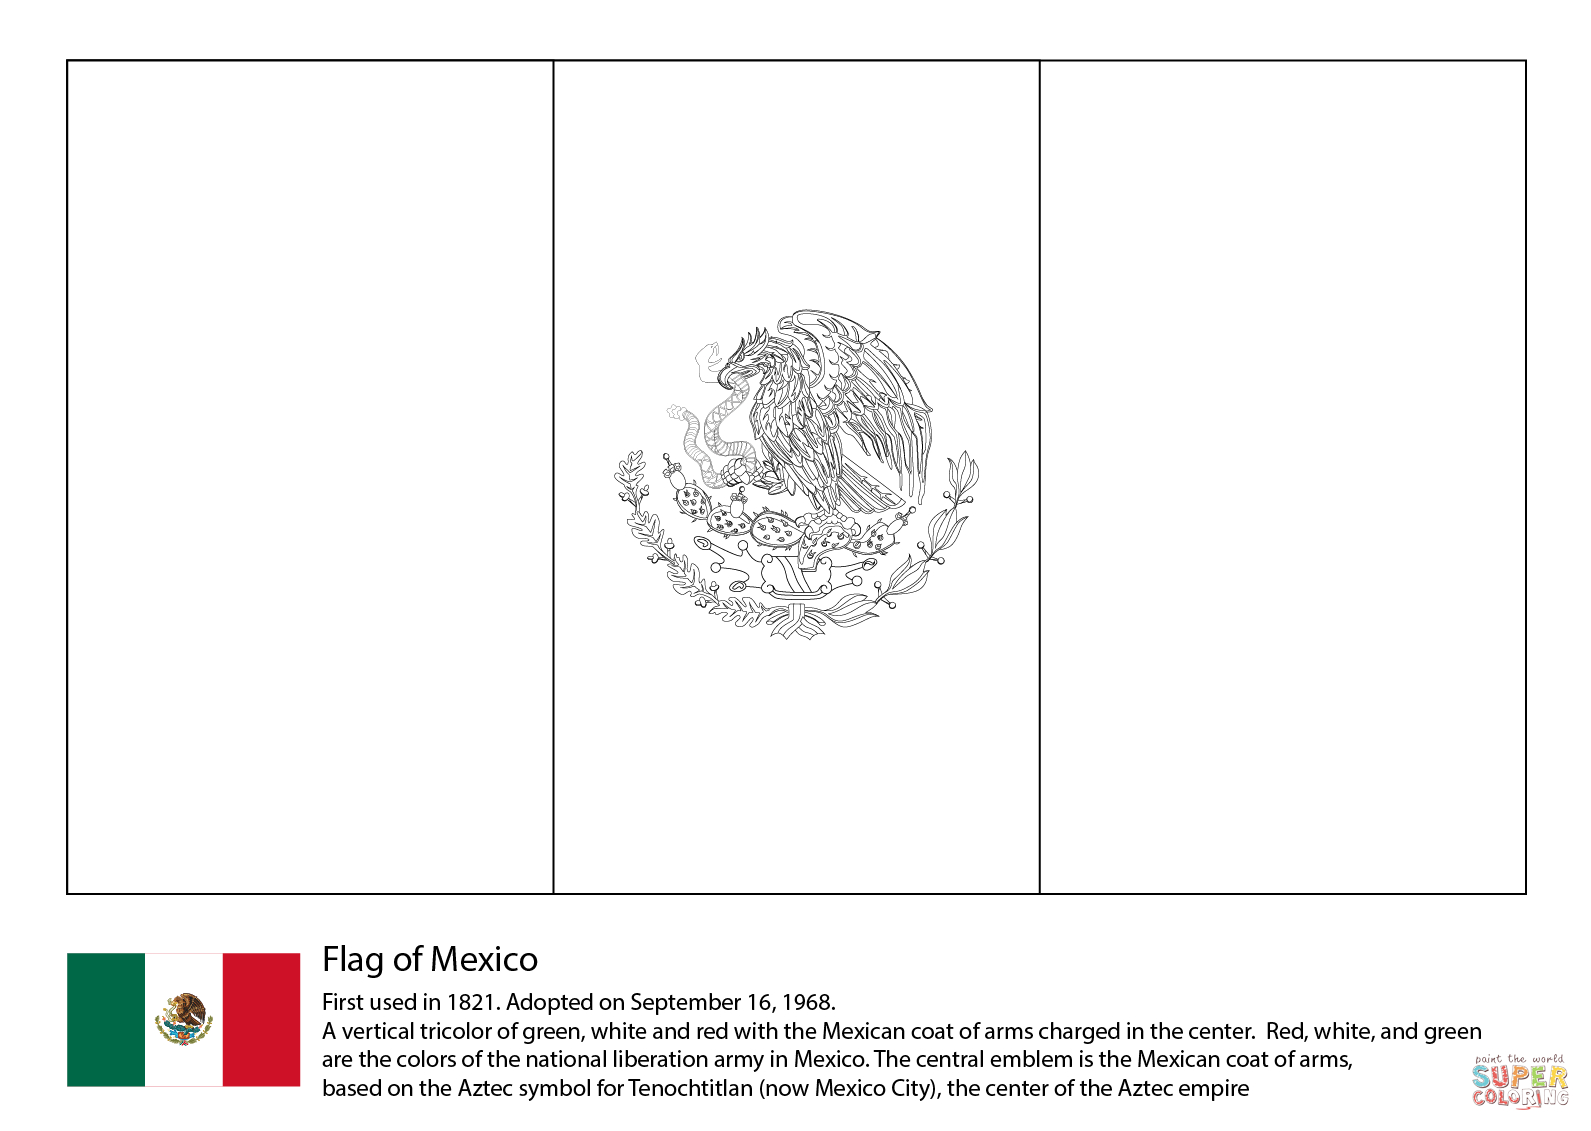 Mexico Flag Coloring Page | Free Printable Coloring Pages - Free Printable Blank Flag Template